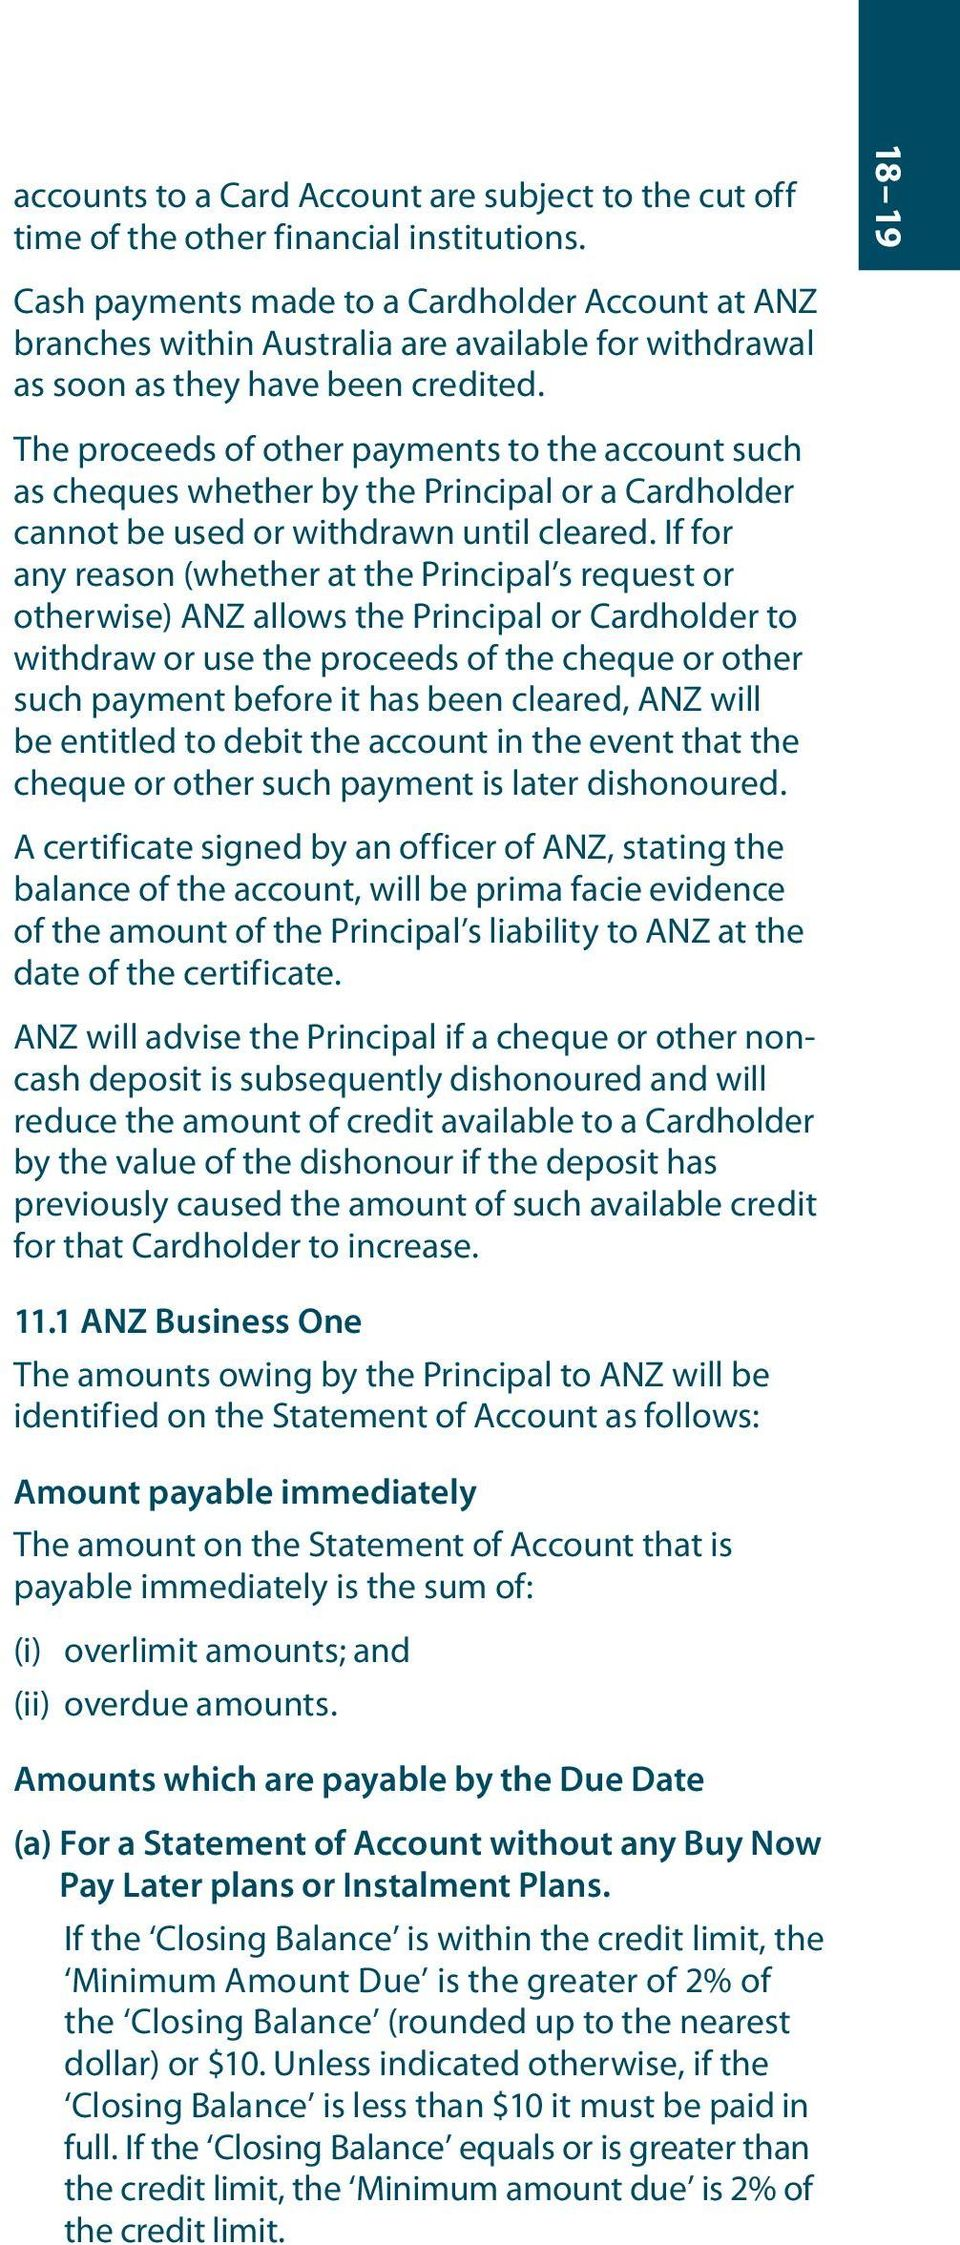 The proceeds of other payments to the account such as cheques whether by the Principal or a Cardholder cannot be used or withdrawn until cleared.